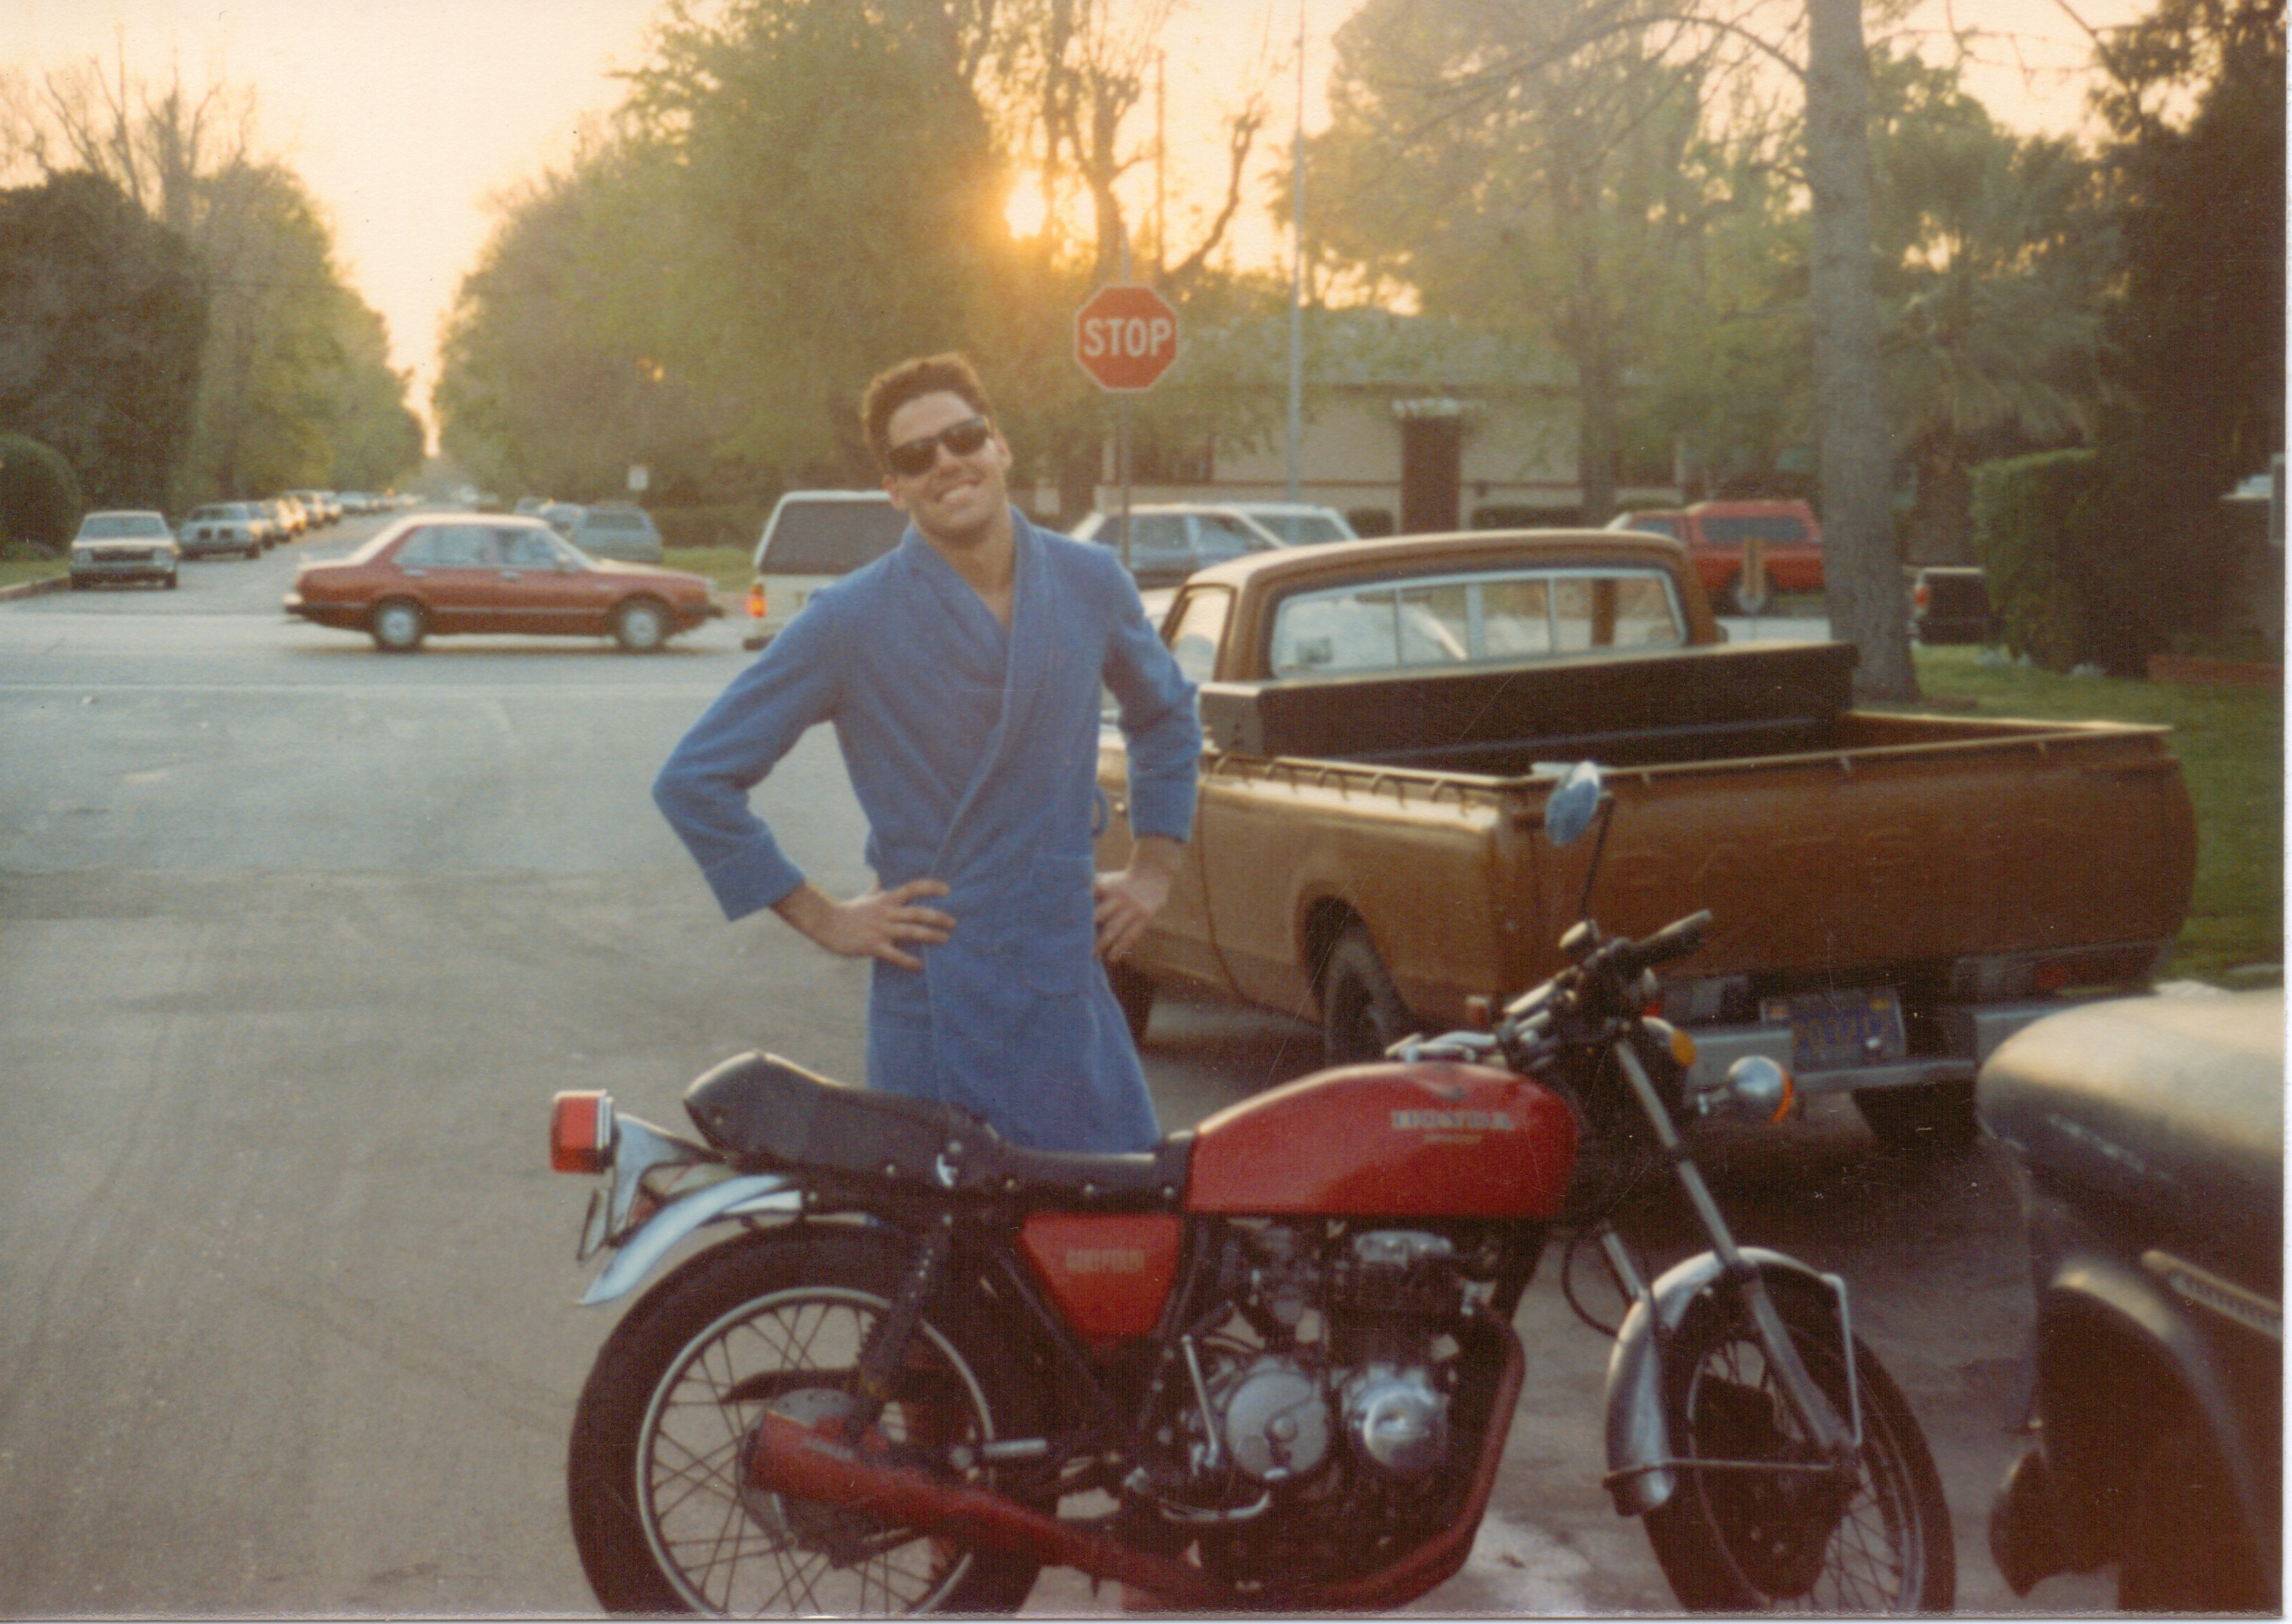 06-bathrobe-and-motorcycle